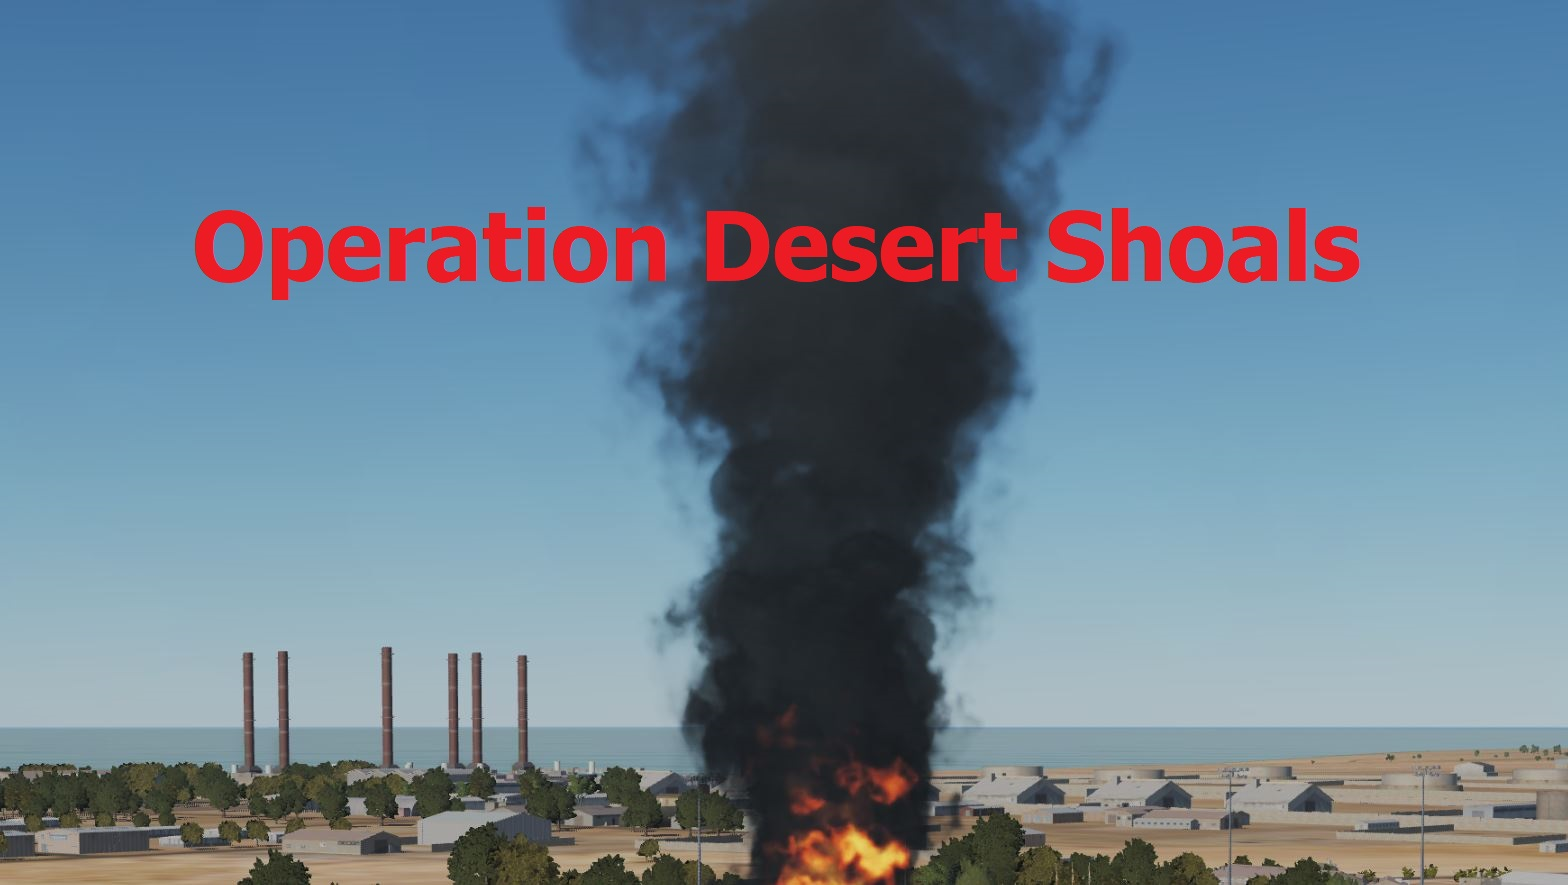 Operation Desert Shoals